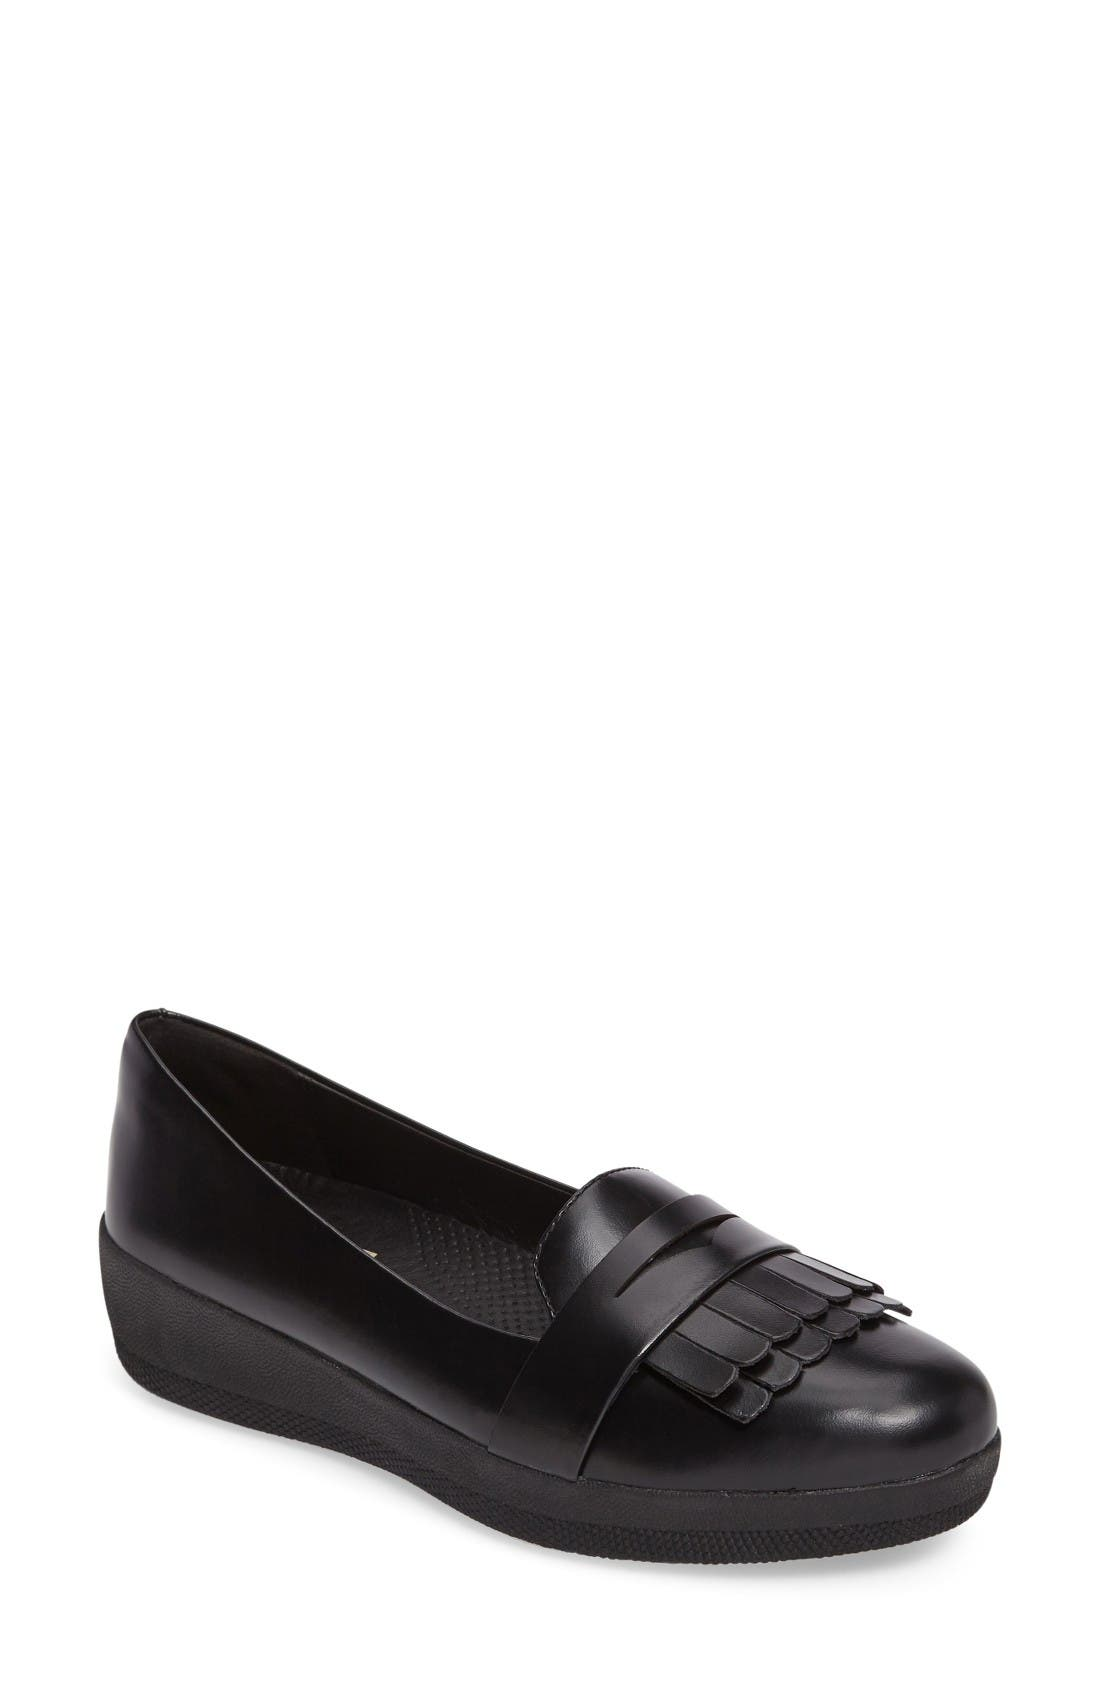 Main Image - FitFlop Fringey Loafer (Women)